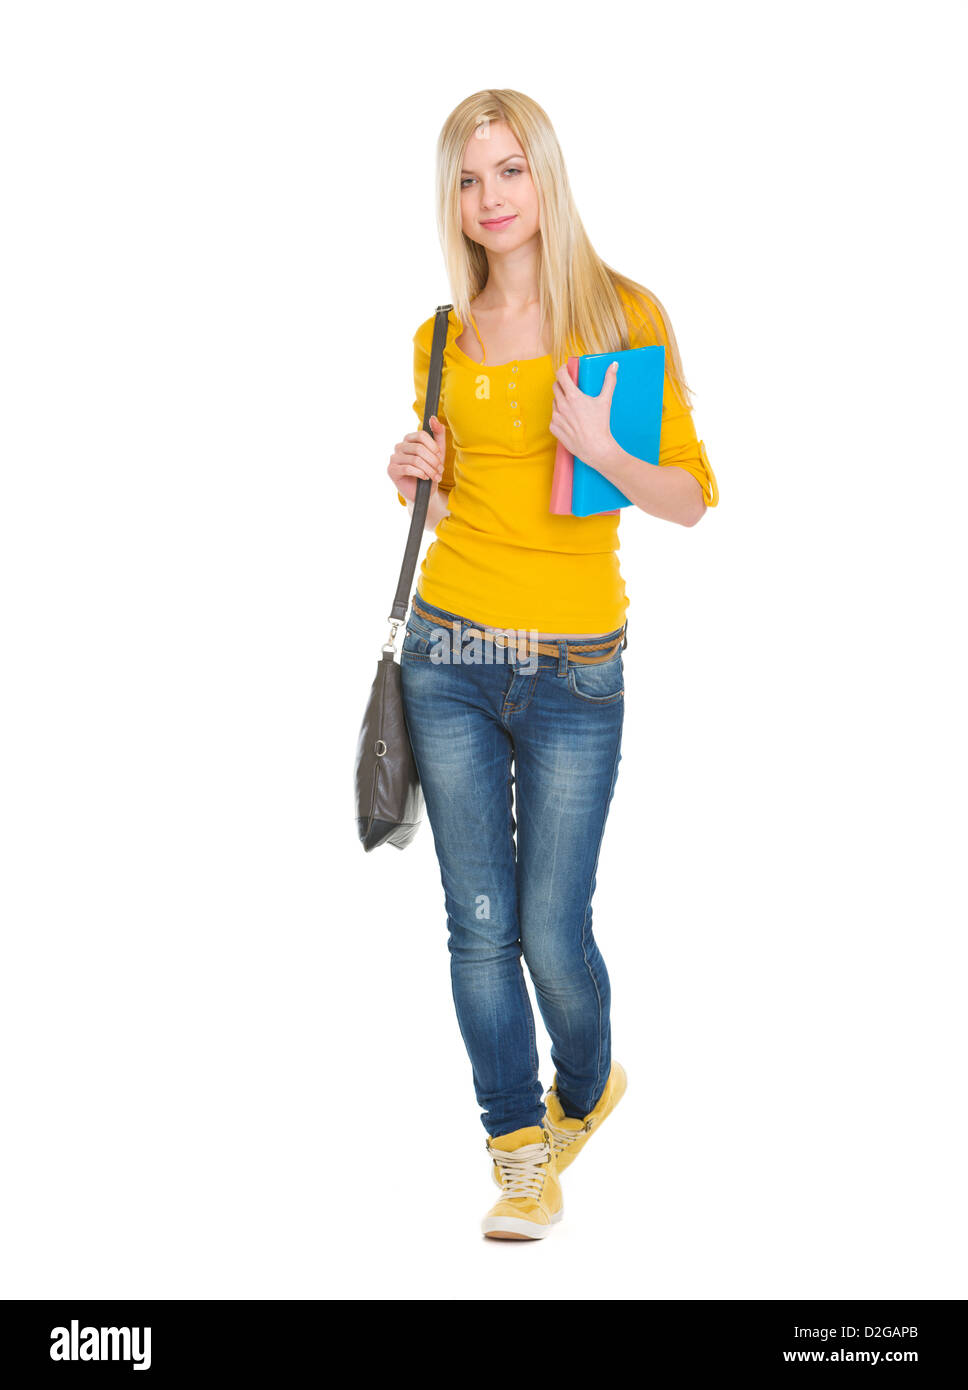 Teenage student girl with books going forward - Stock Image